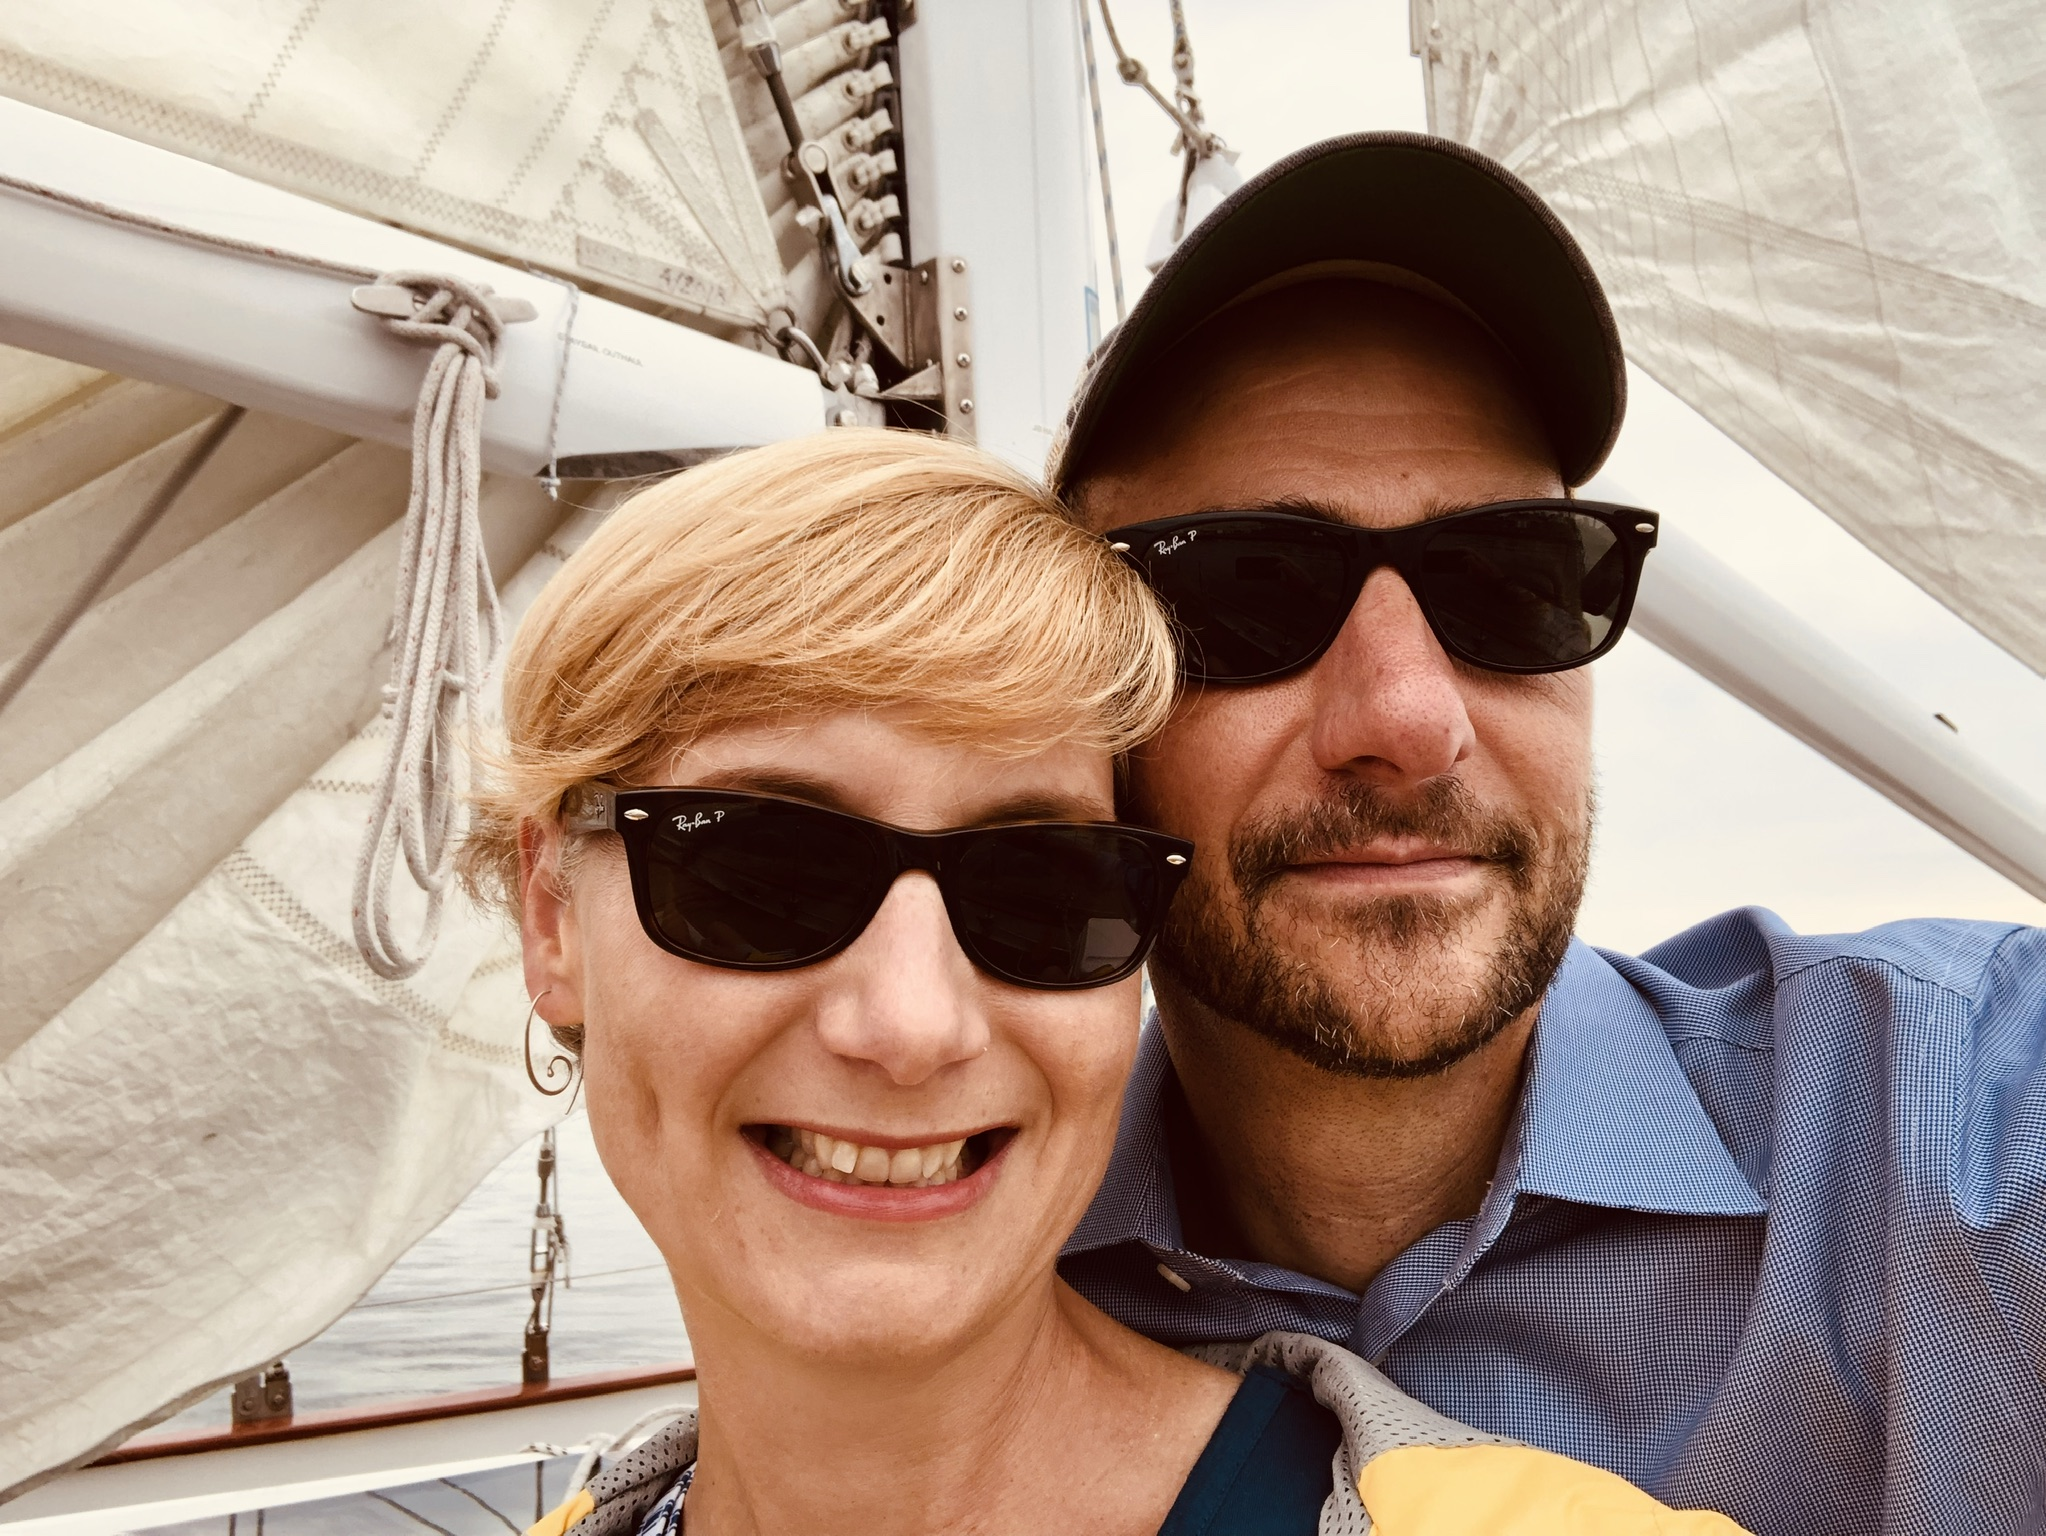 Man and Women with sunglasses enjoying a cruise on the schooner